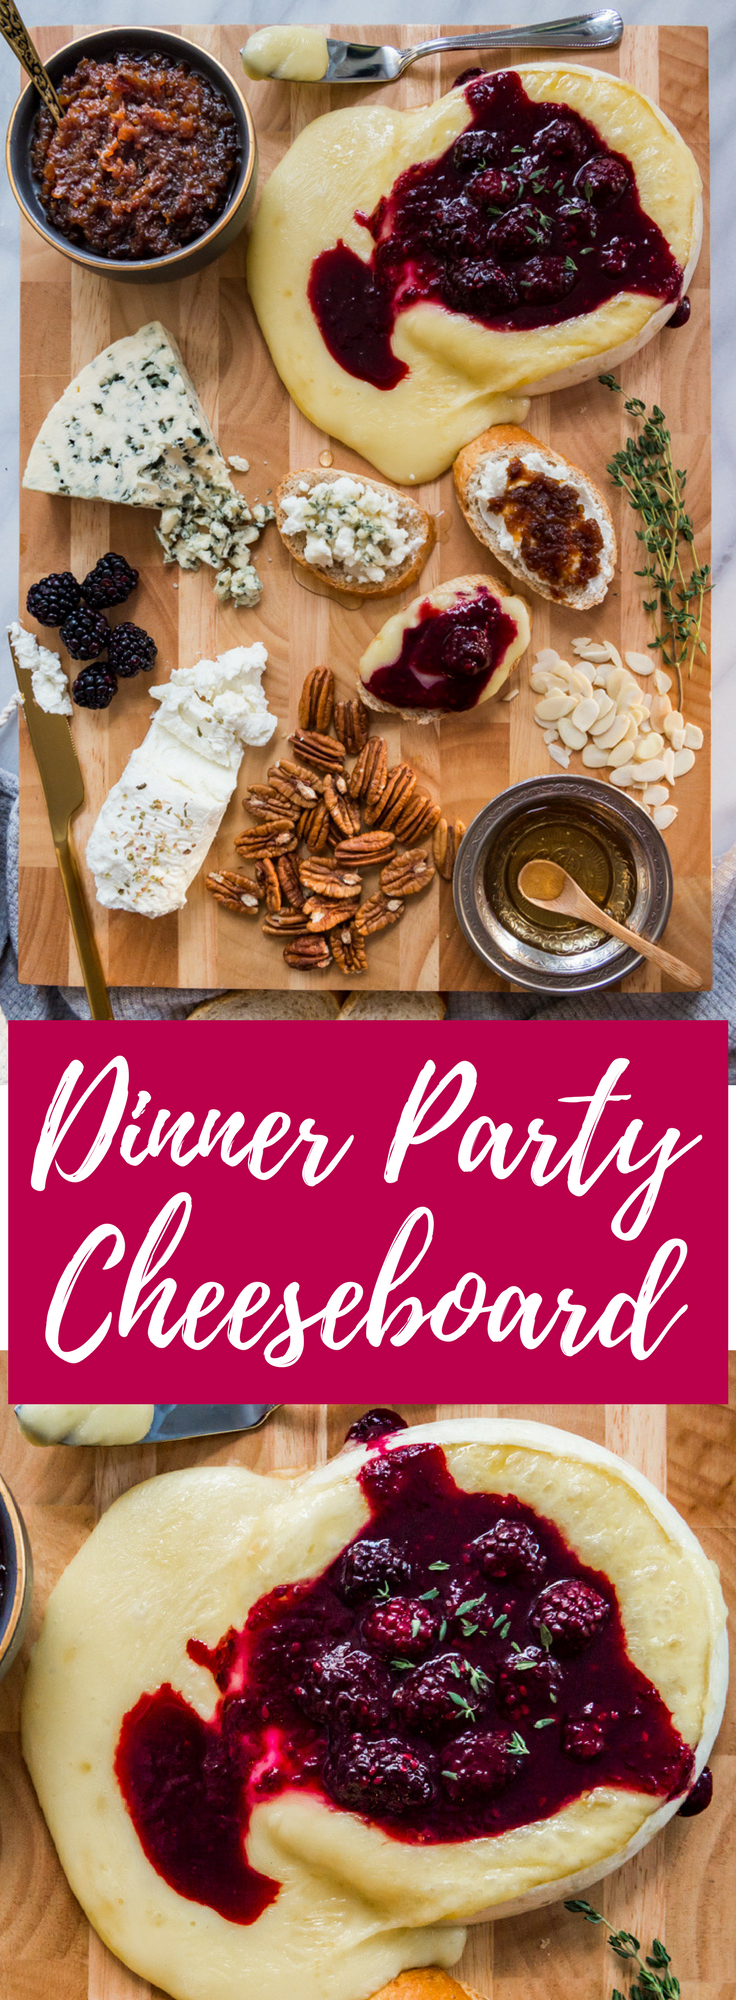 The ultimate cheeseboard appetizer for your next dinner party! Complete with a maple bacon onion jam and brie with blackberry merlot compote.